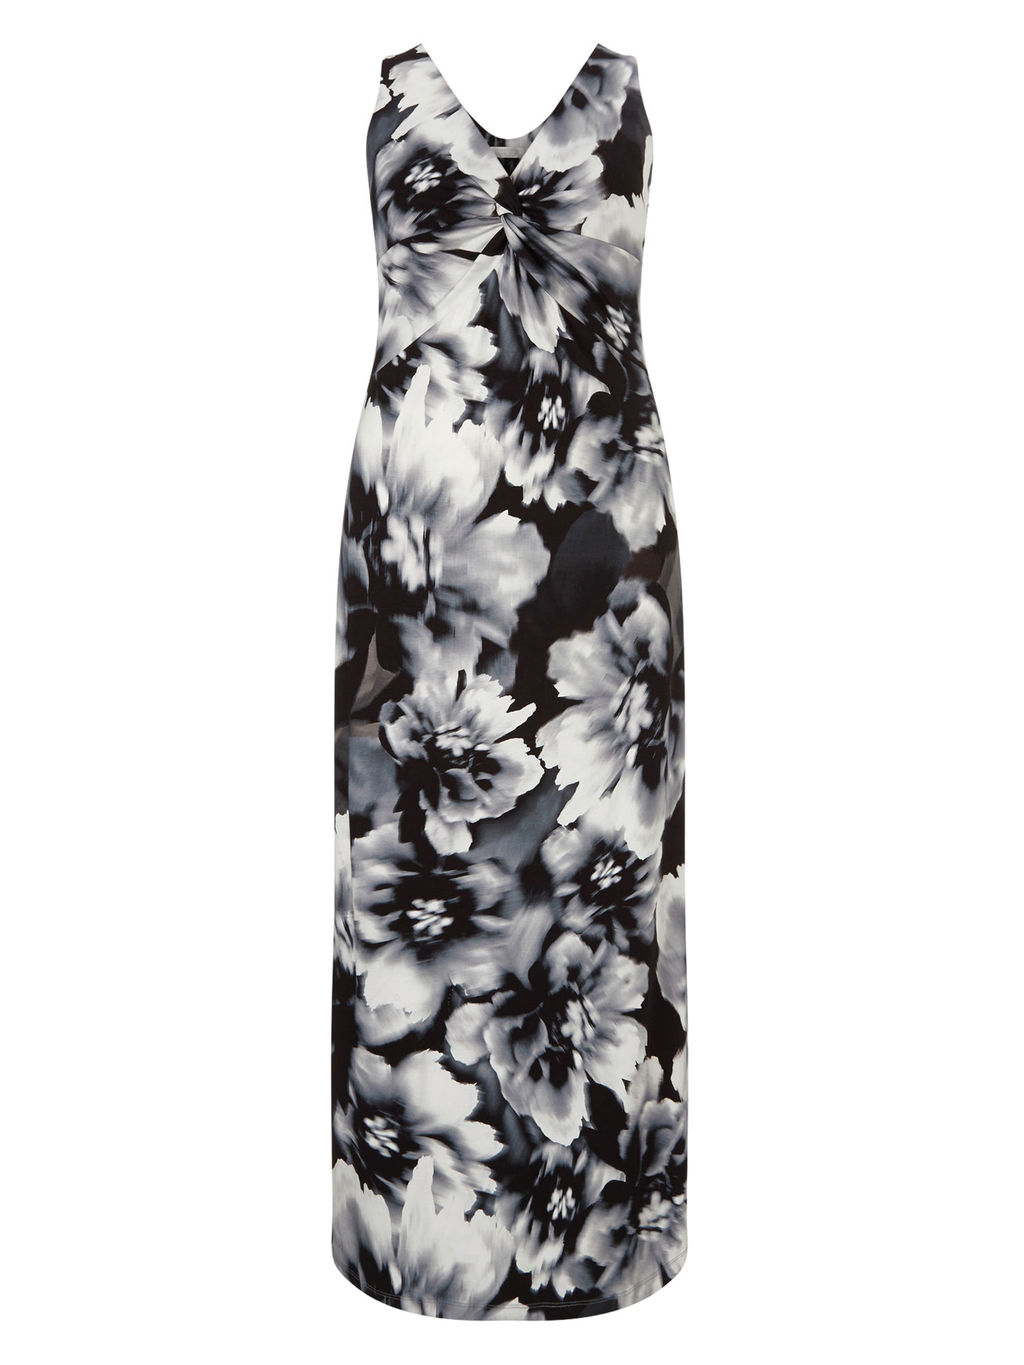 Mono Floral Printed Maxi Dress - neckline: v-neck; fit: tailored/fitted; sleeve style: sleeveless; style: maxi dress; length: ankle length; secondary colour: white; predominant colour: black; fibres: viscose/rayon - stretch; occasions: occasion; sleeve length: sleeveless; pattern type: fabric; pattern size: big & busy; pattern: florals; texture group: jersey - stretchy/drapey; multicoloured: multicoloured; season: s/s 2016; wardrobe: event